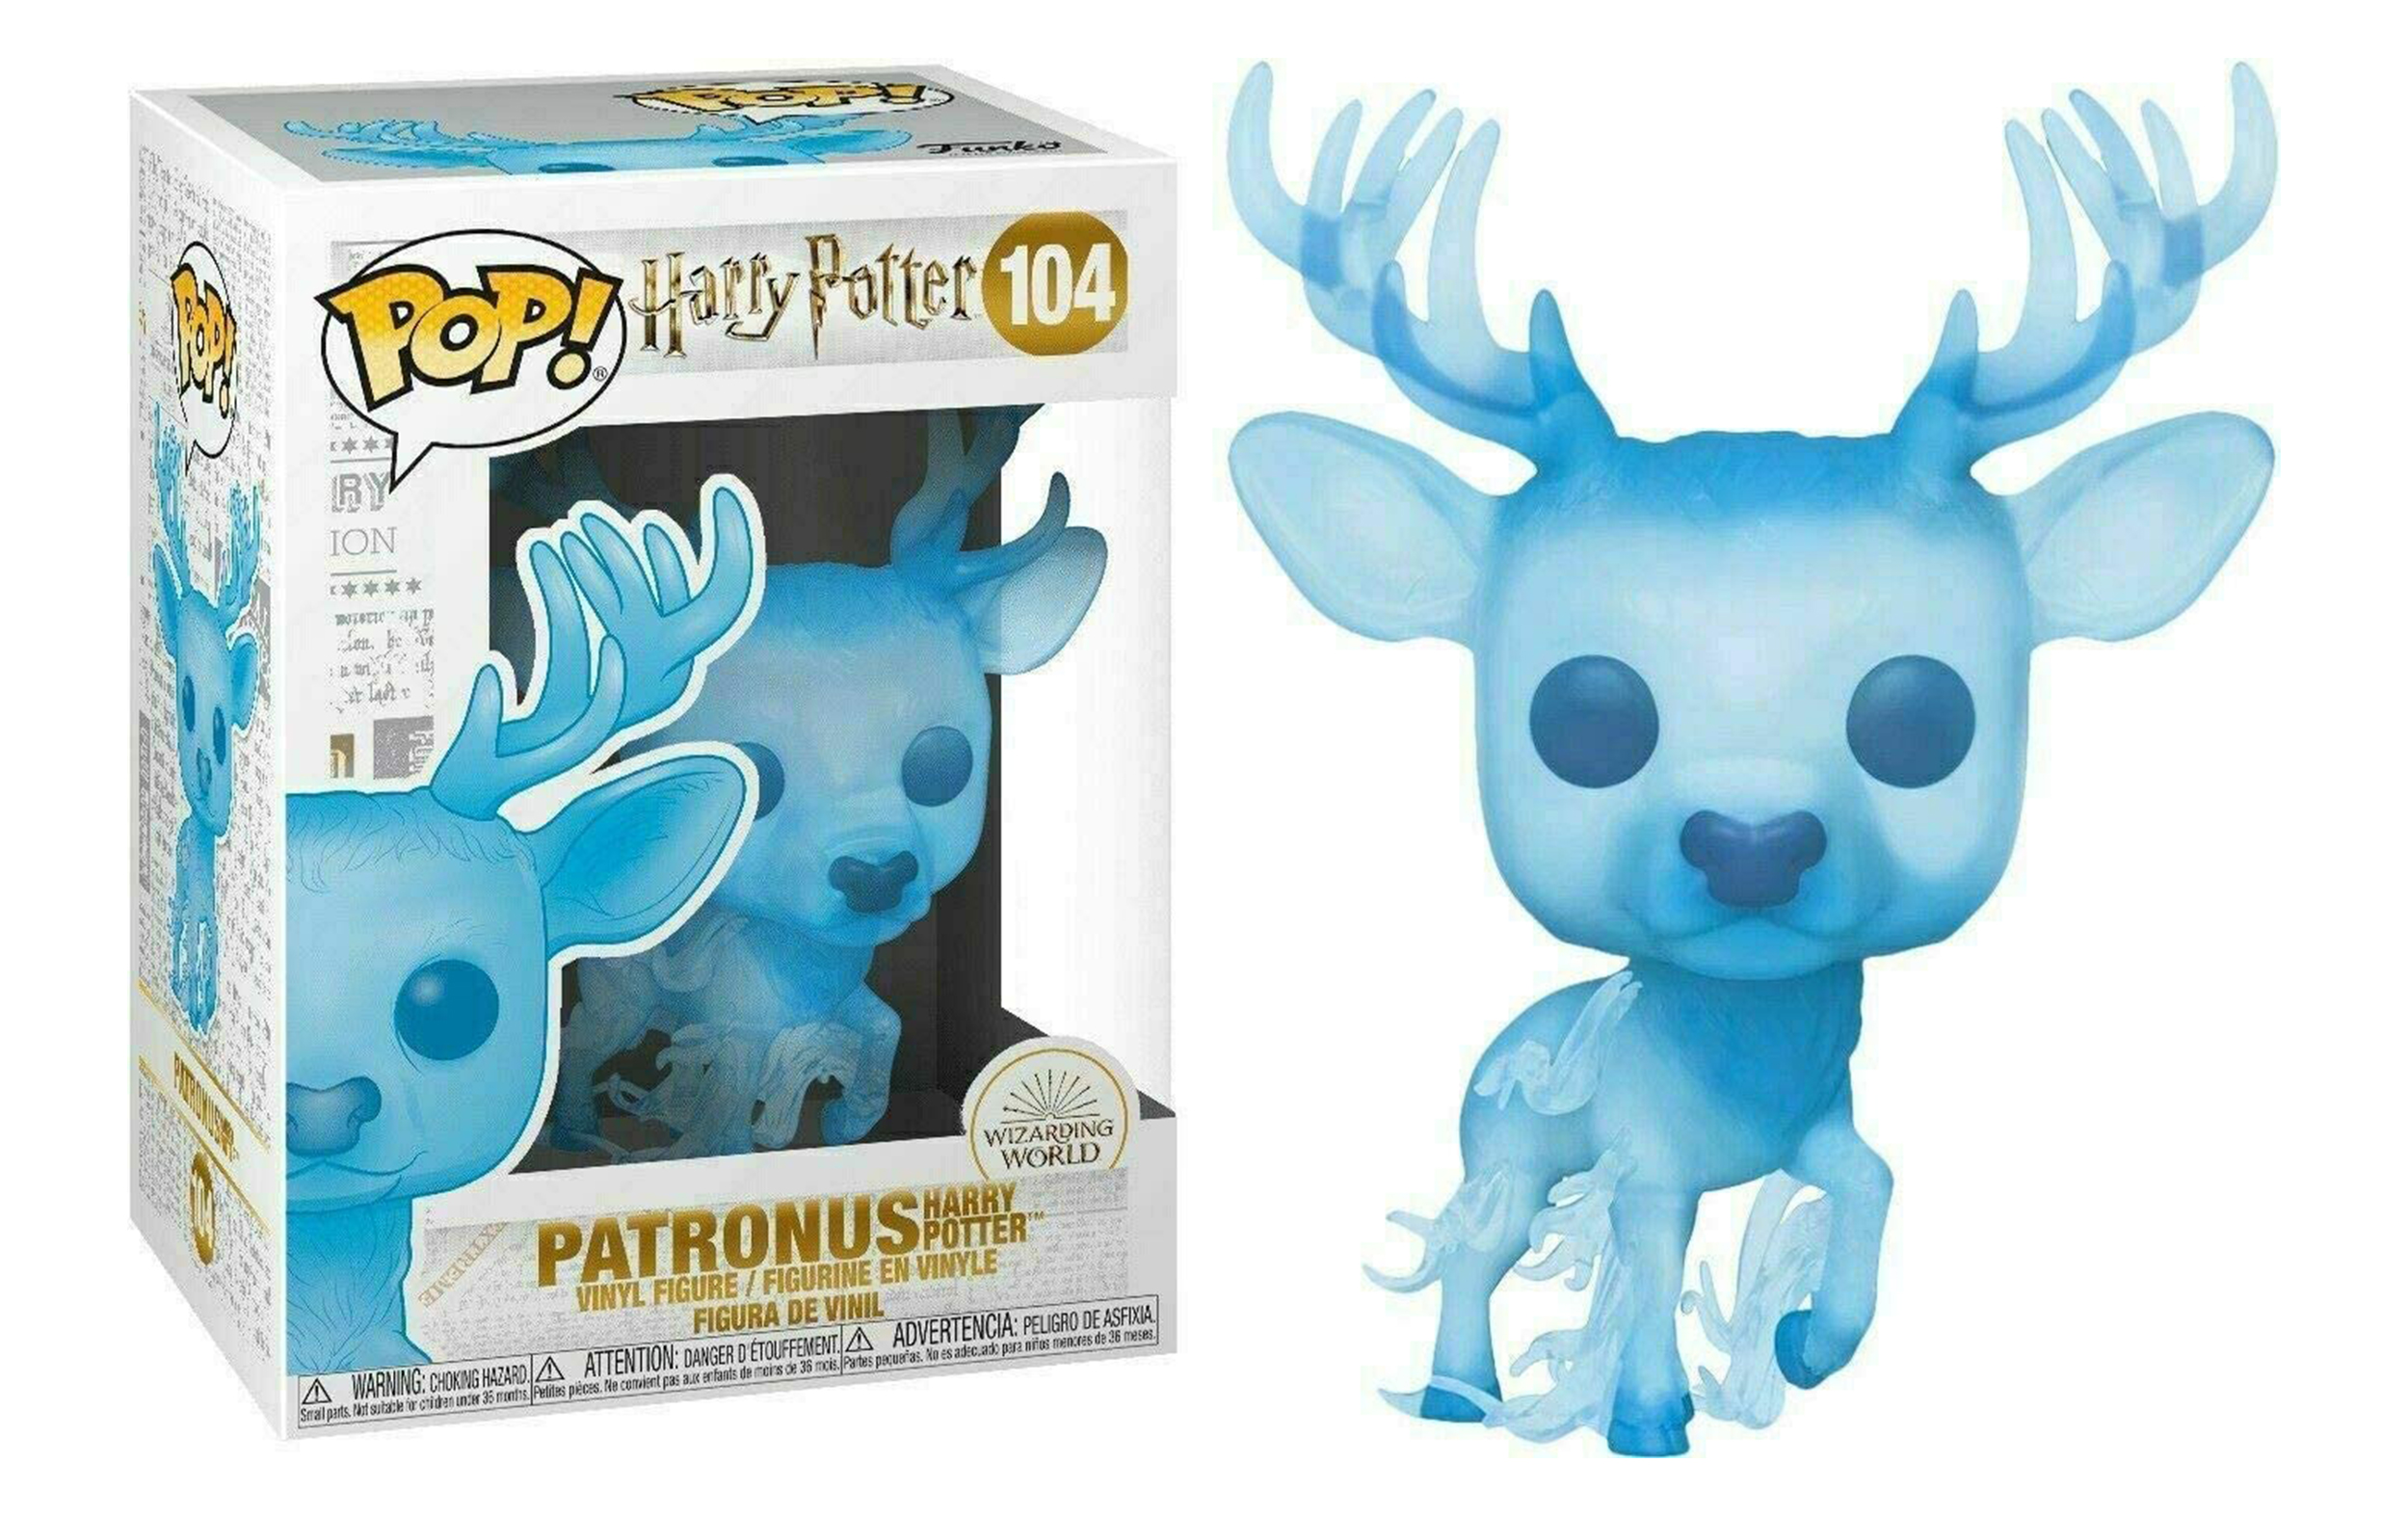 Harry Potter Patronus 104 Funko POP Vinyl Figure